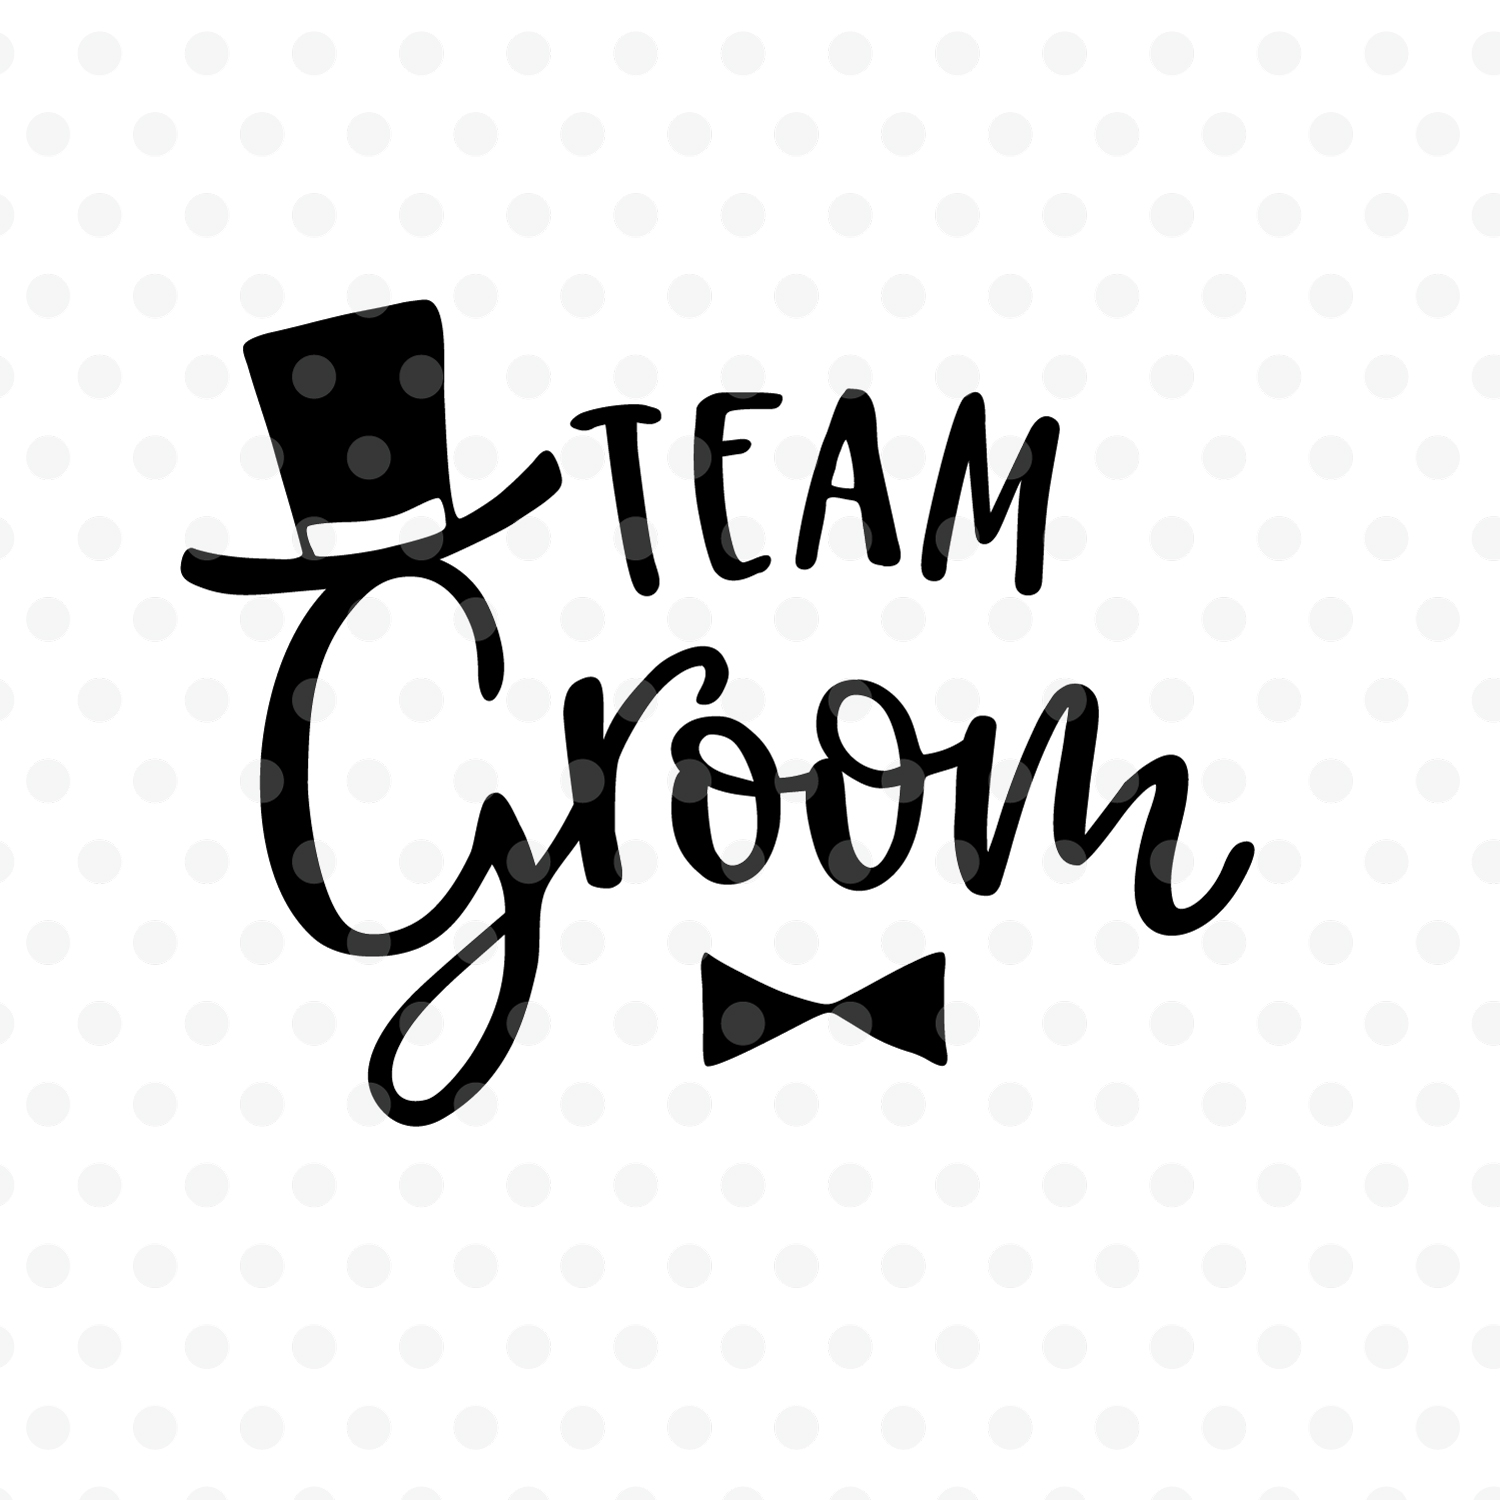 Team Groom wedding SVG, EPS, PNG, DXF example image 2